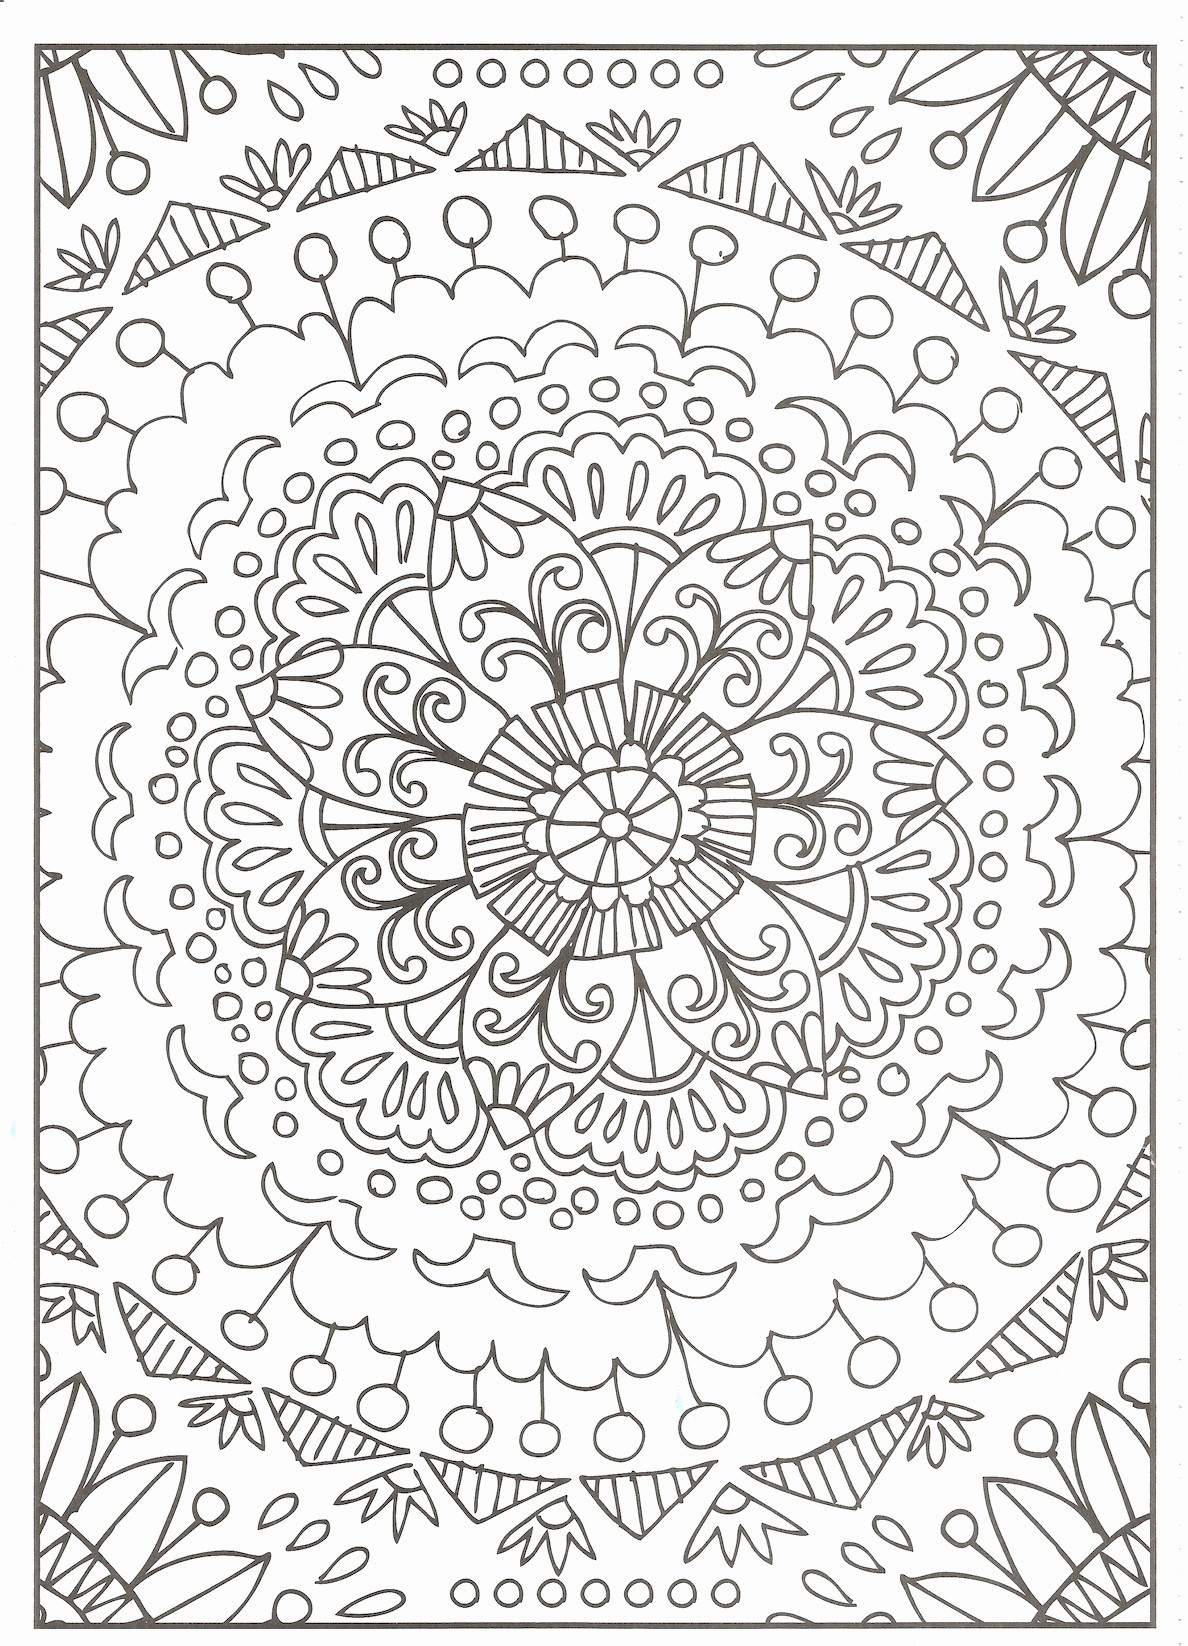 Flower Coloring Pages Download 20f - To print for your project